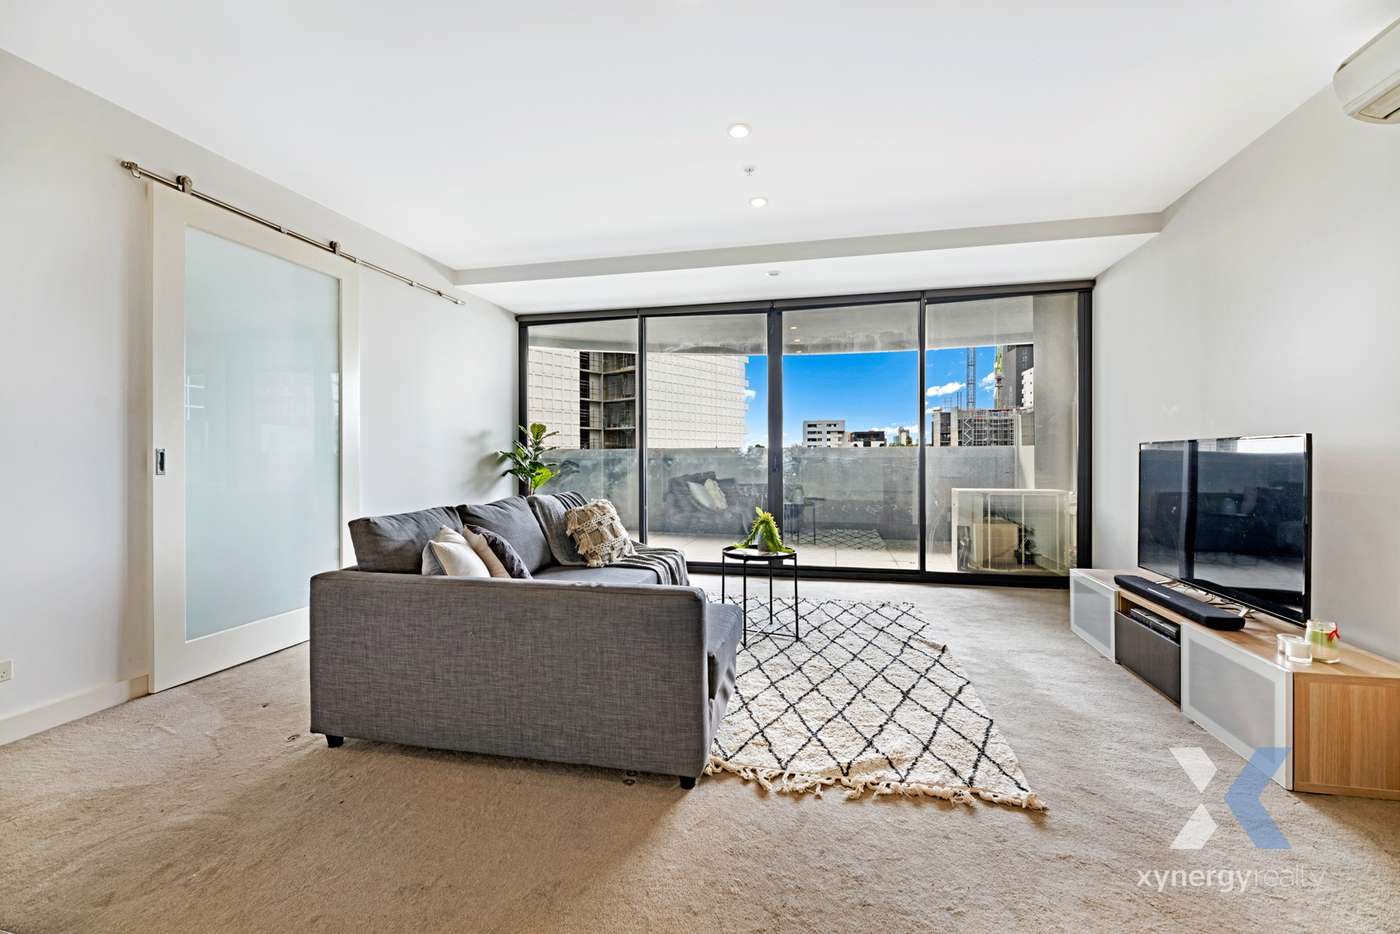 Main view of Homely apartment listing, 611/35 Malcolm Street, South Yarra VIC 3141